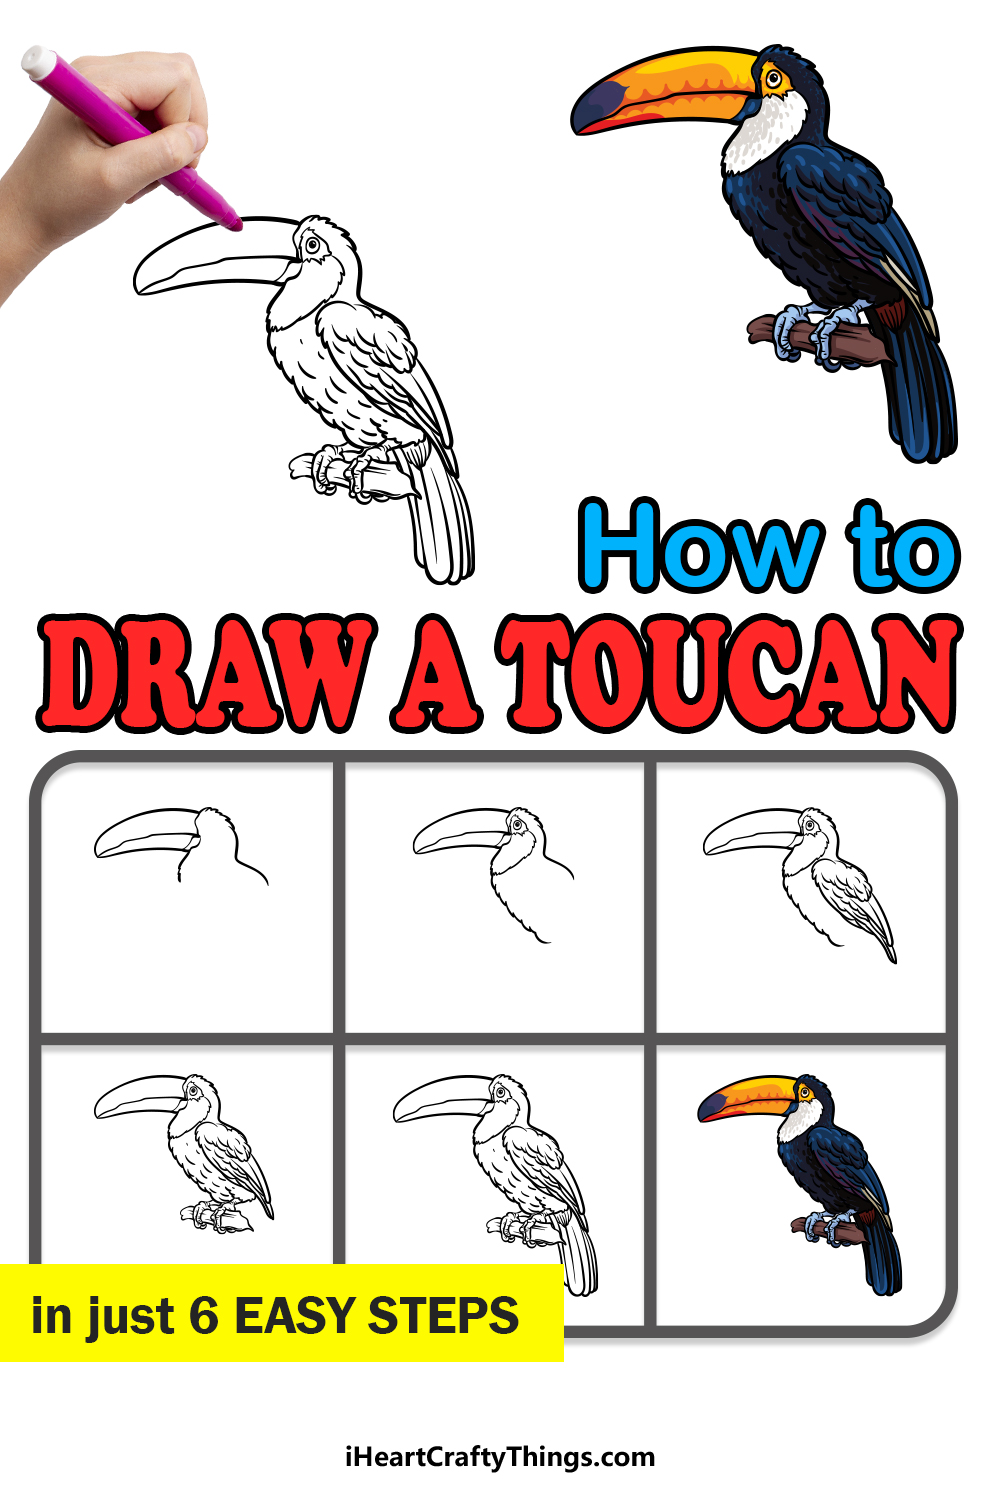 how to draw a toucan in 6 easy steps